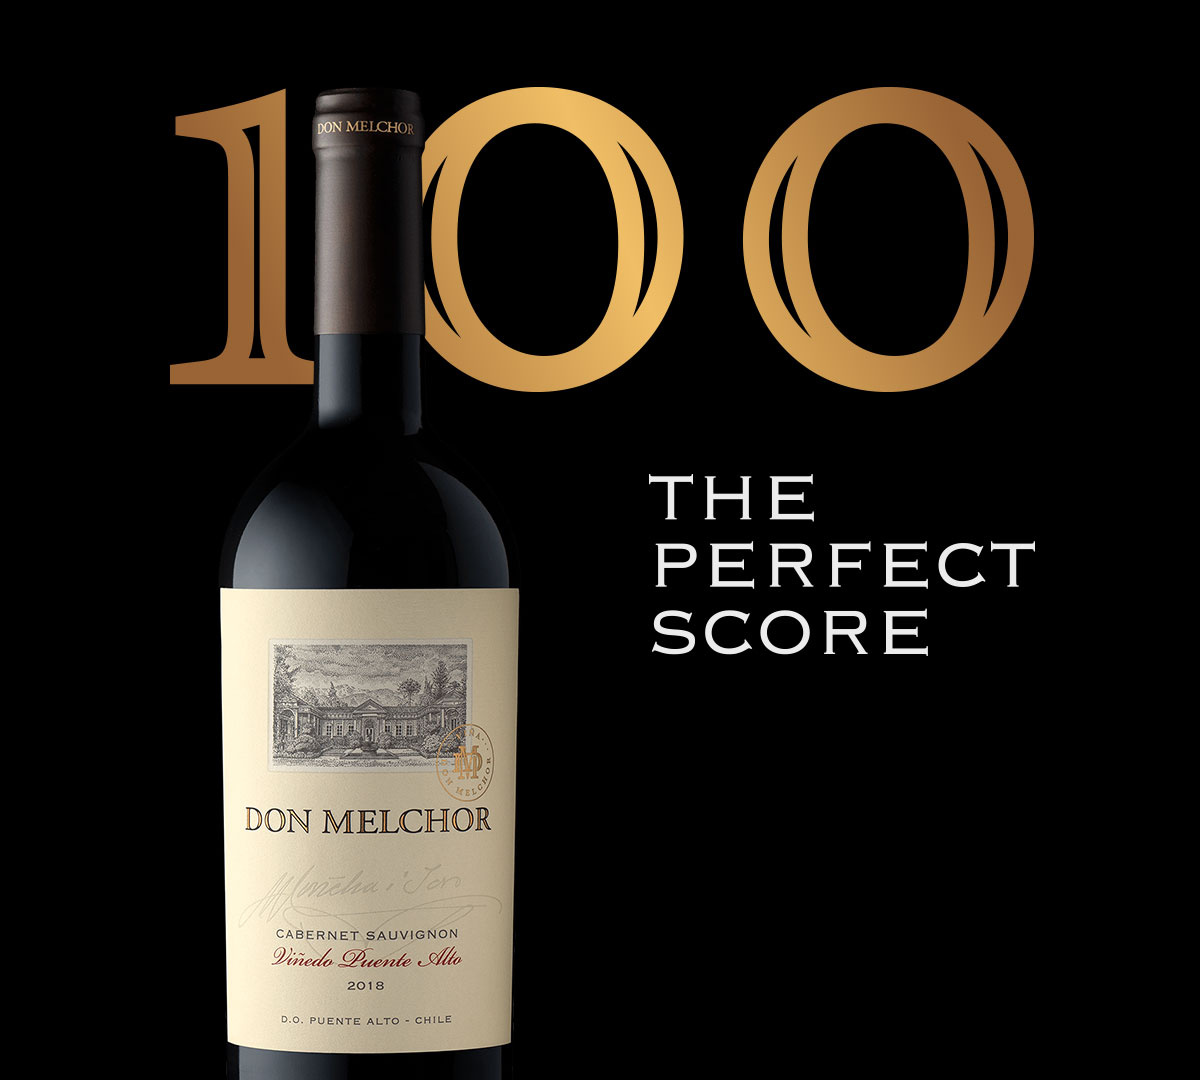 Don Melchor obtains 100 points, the perfect score